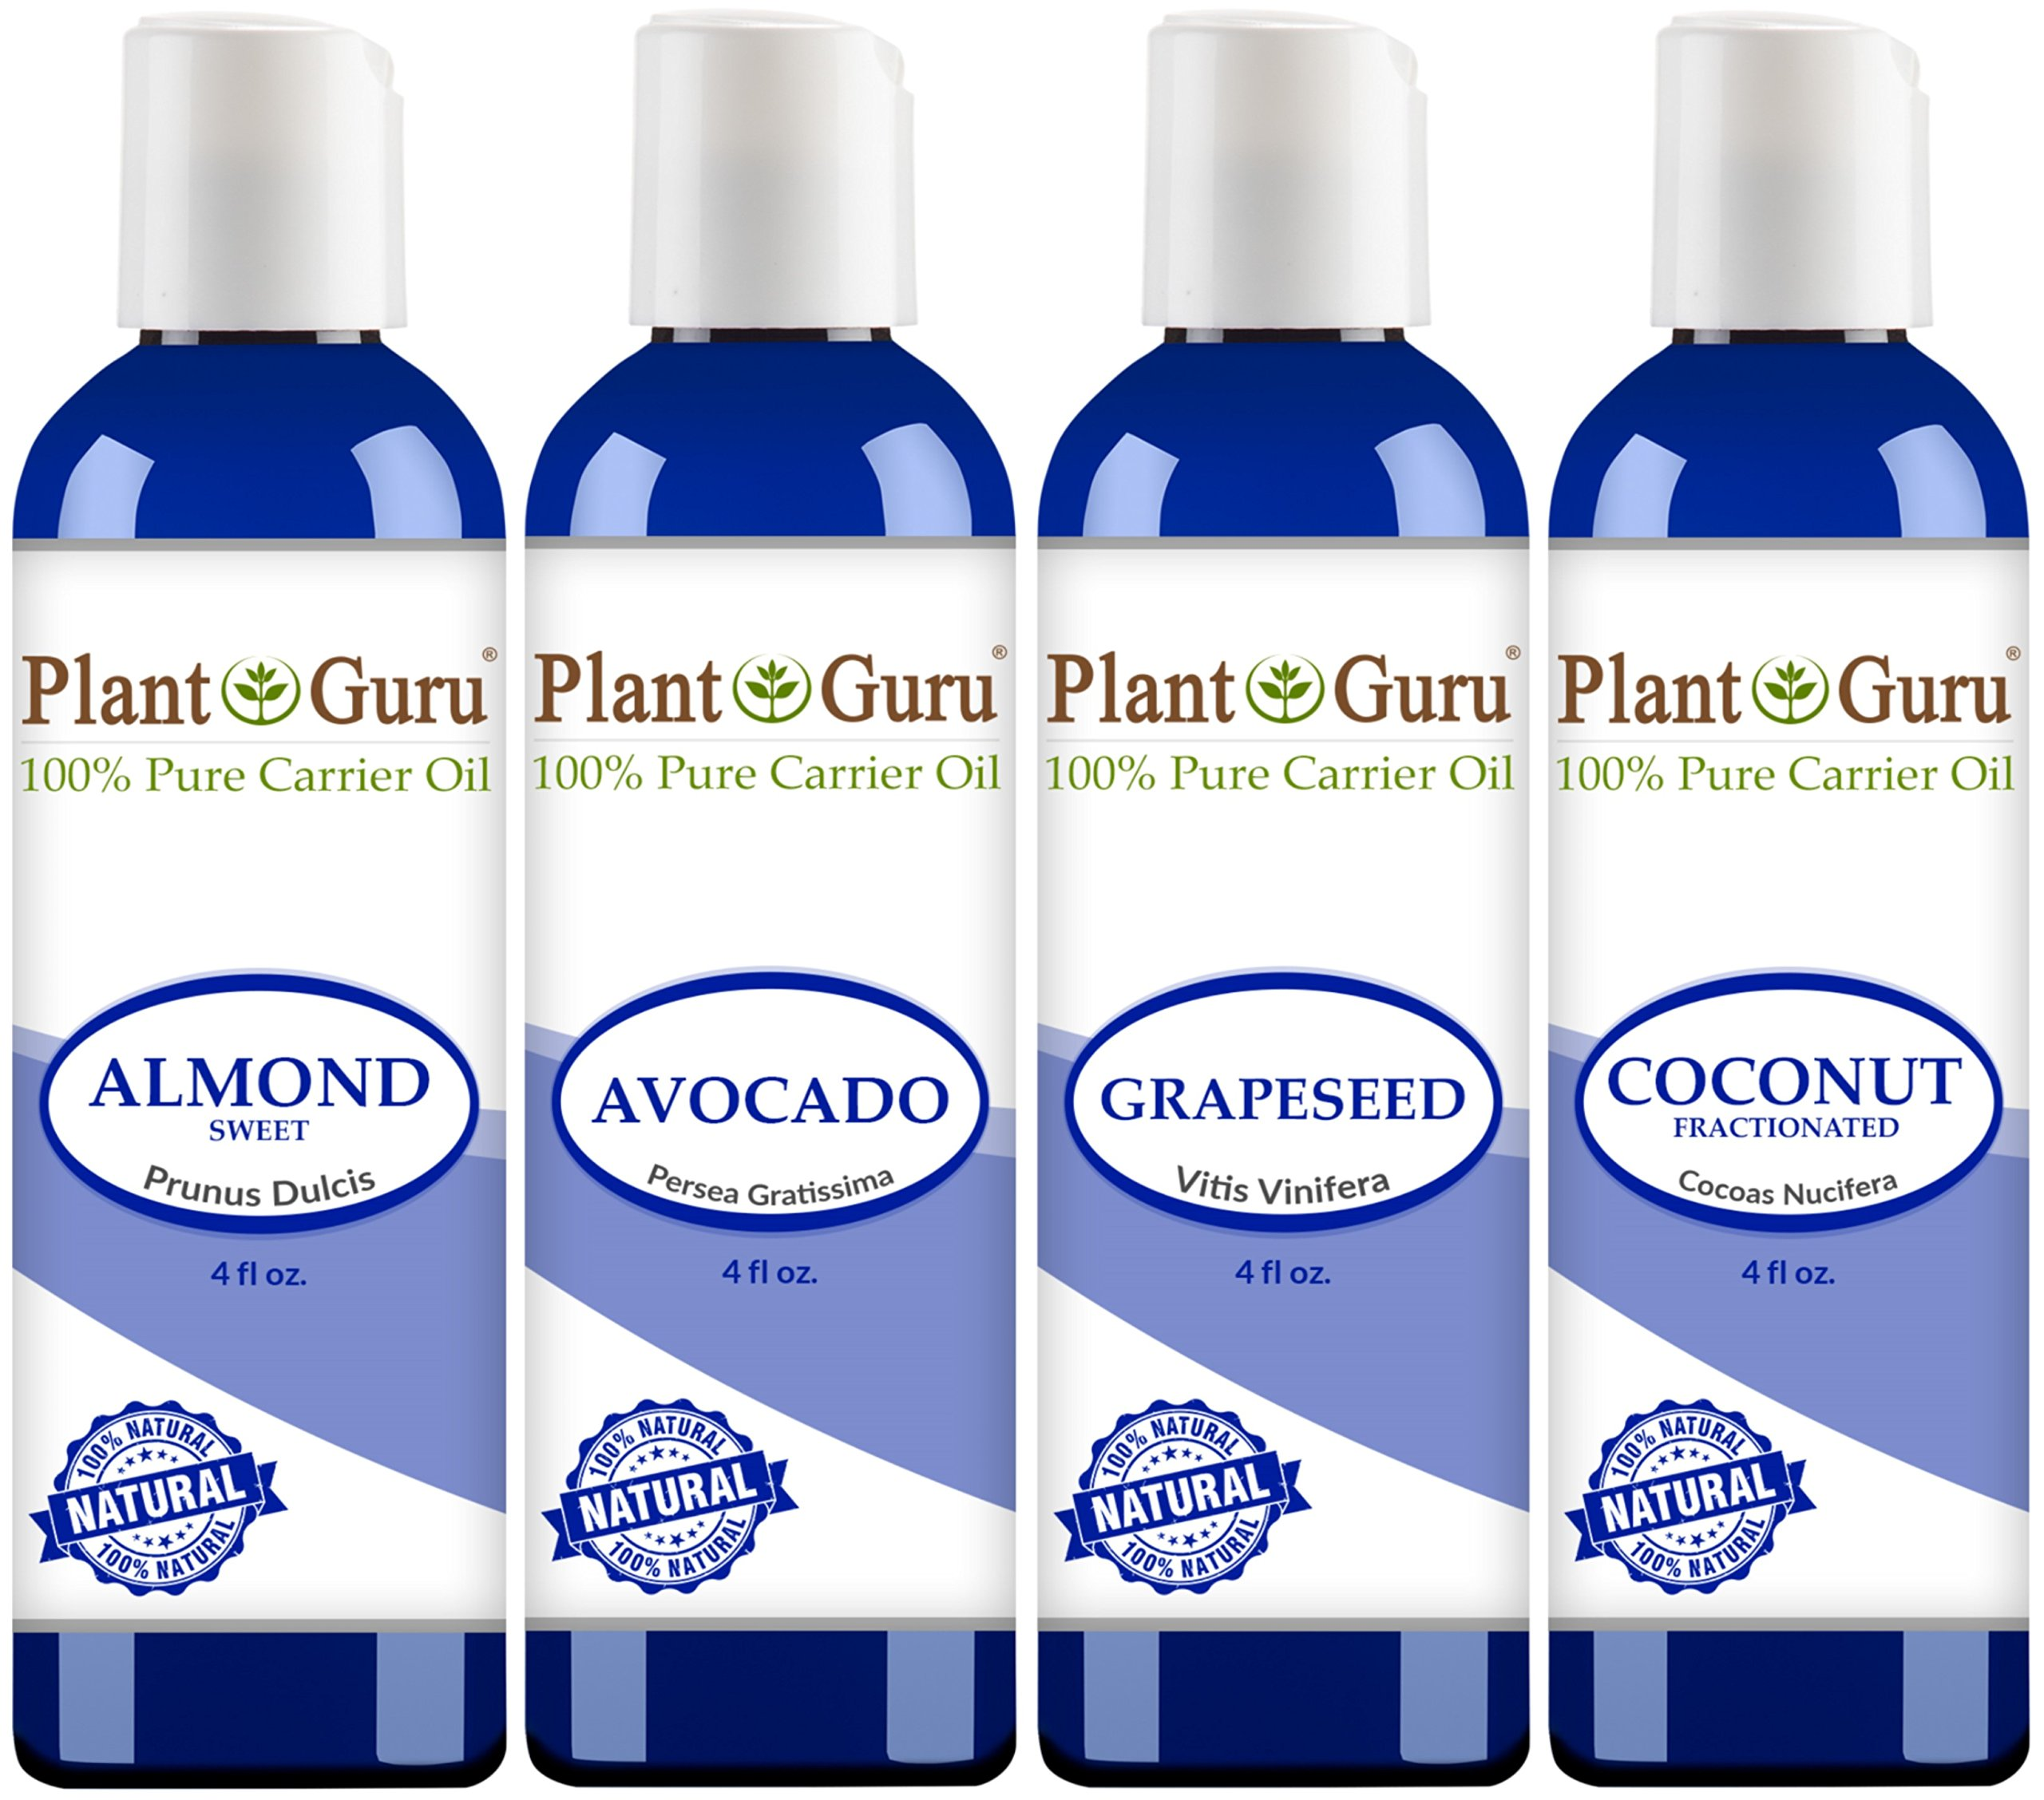 Carrier Oil Variety Set 4 oz - Cold Pressed 100% Pure Natural, Almond, Avocado, Coconut Fractionated, Grapeseed. For Aromatherapy, Essential Oils, Skin and Hair Moisturizer. Perfect for Body Massage.